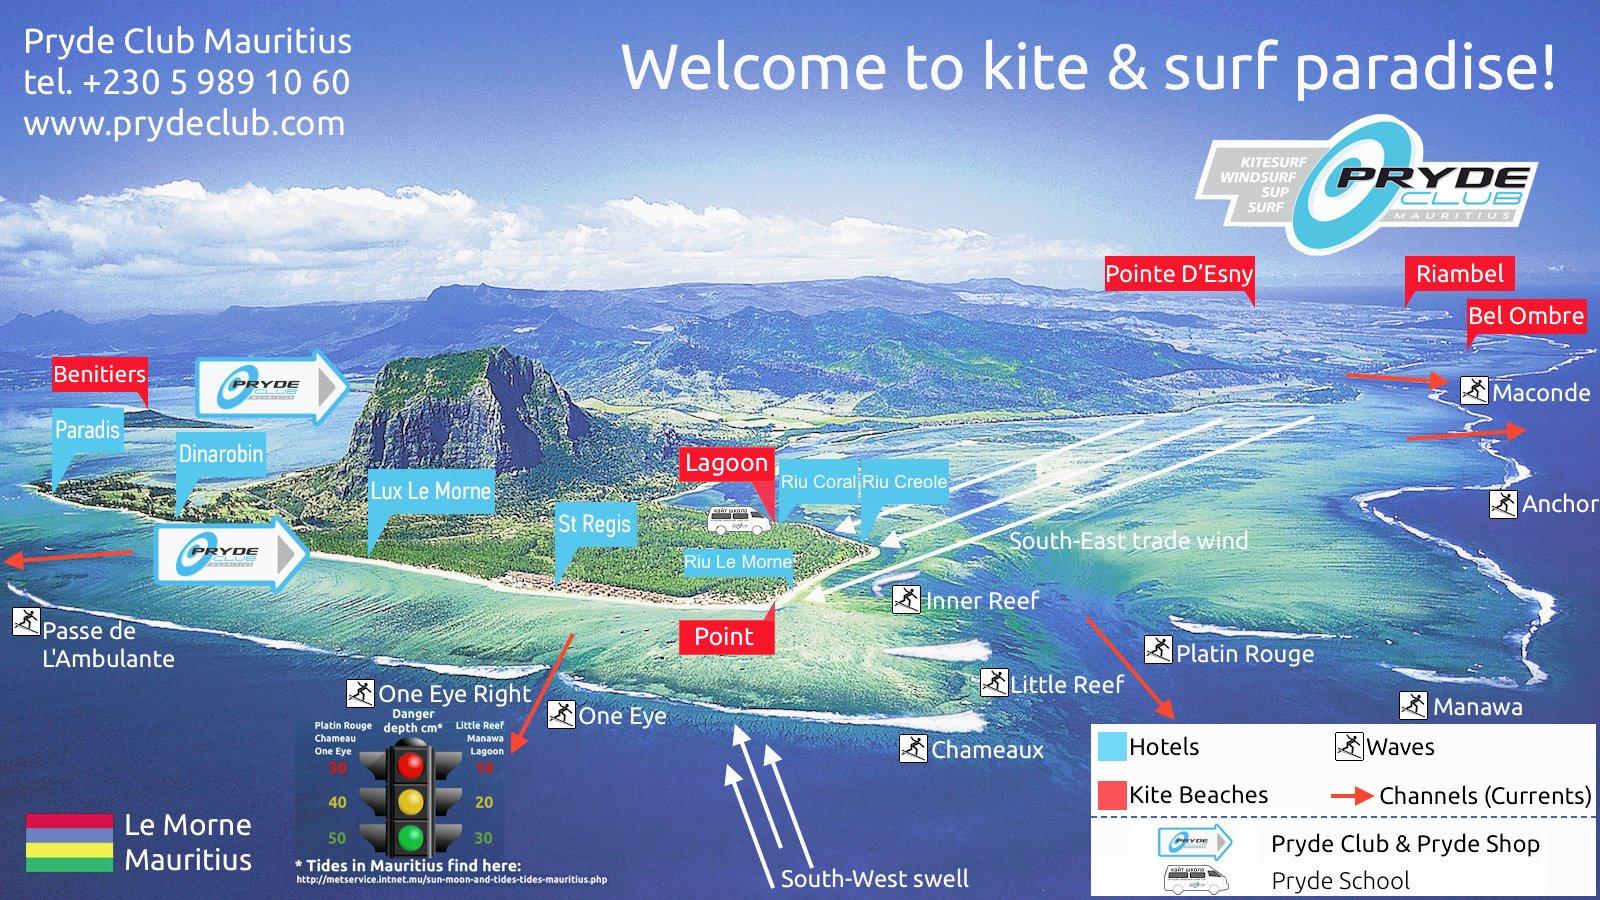 Surf Karte.Ultimative Kite Surf Karte Von Le Morne Prydeclub Com